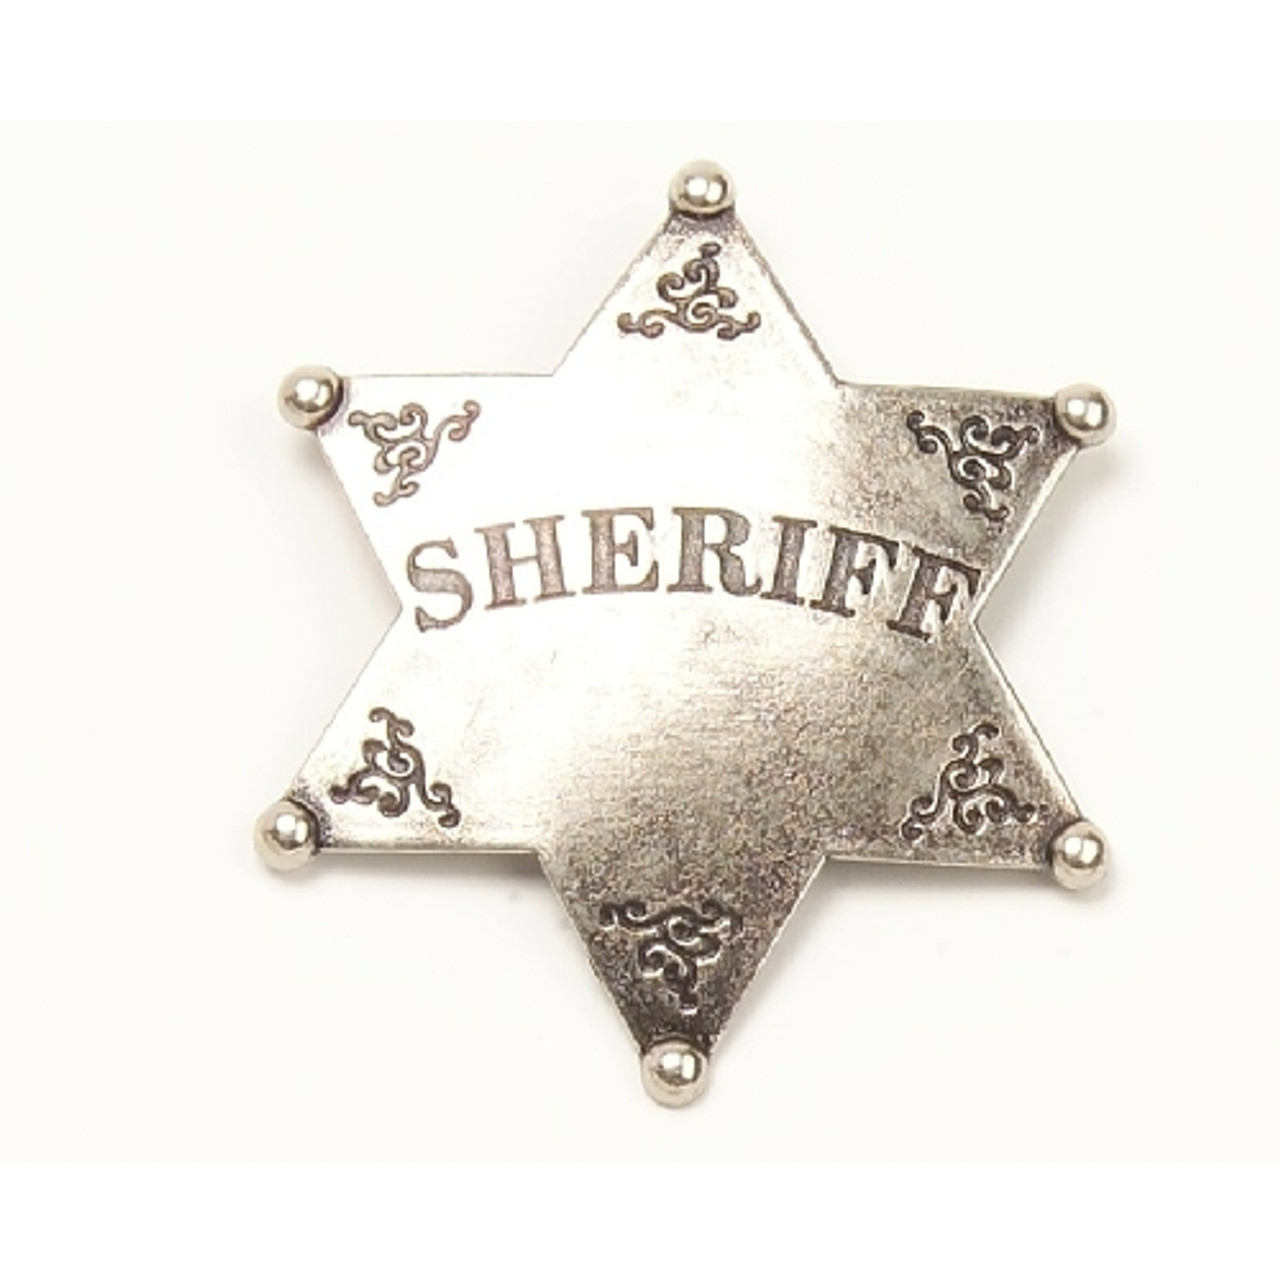 Embossed Durango Sheriff Colorado Territory  Solid Brass Badge Pin